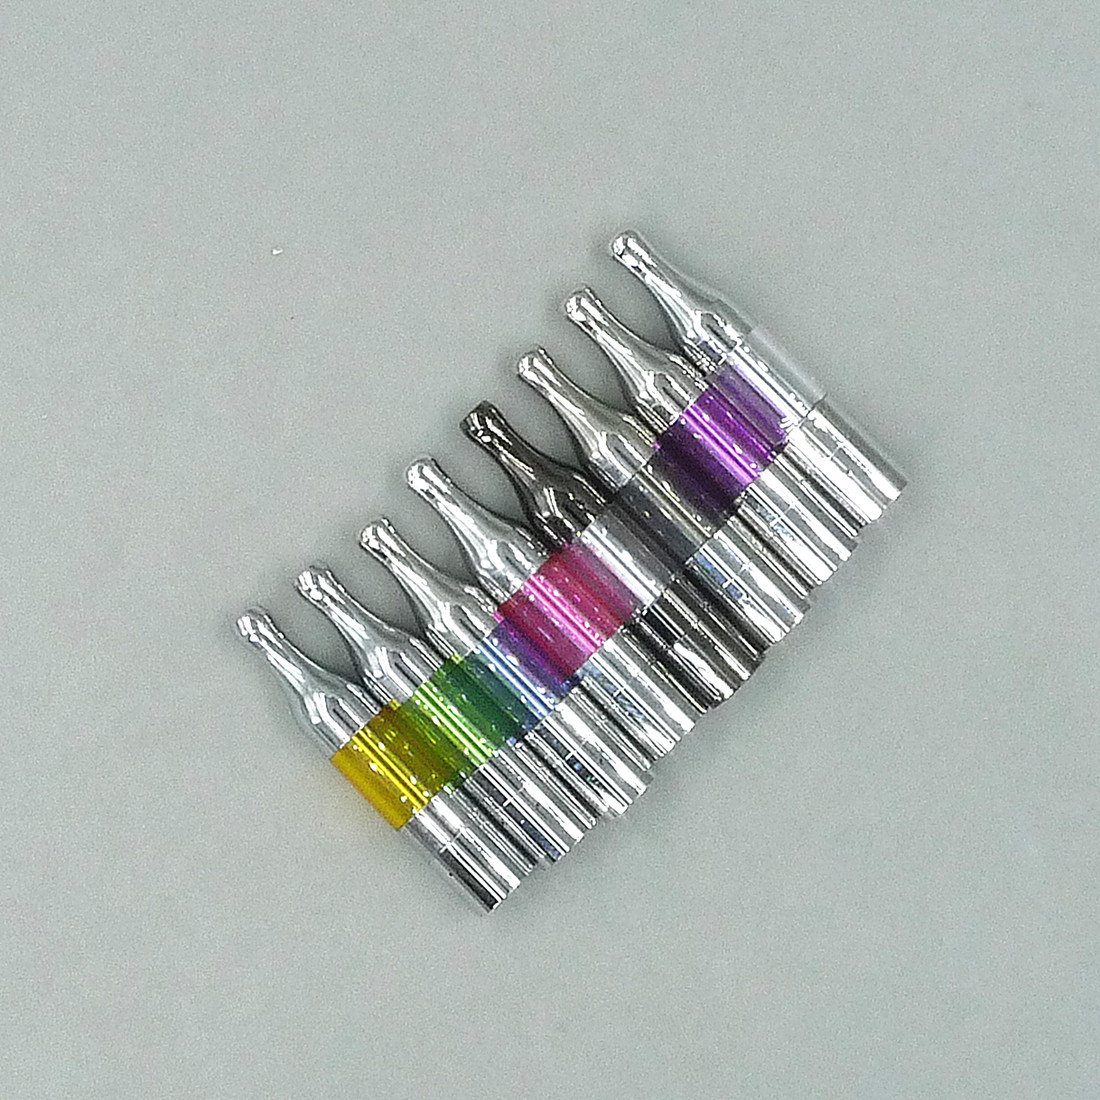 Mini Protank Clearomizer Atomizer 1.6mL Vaporizer Tank